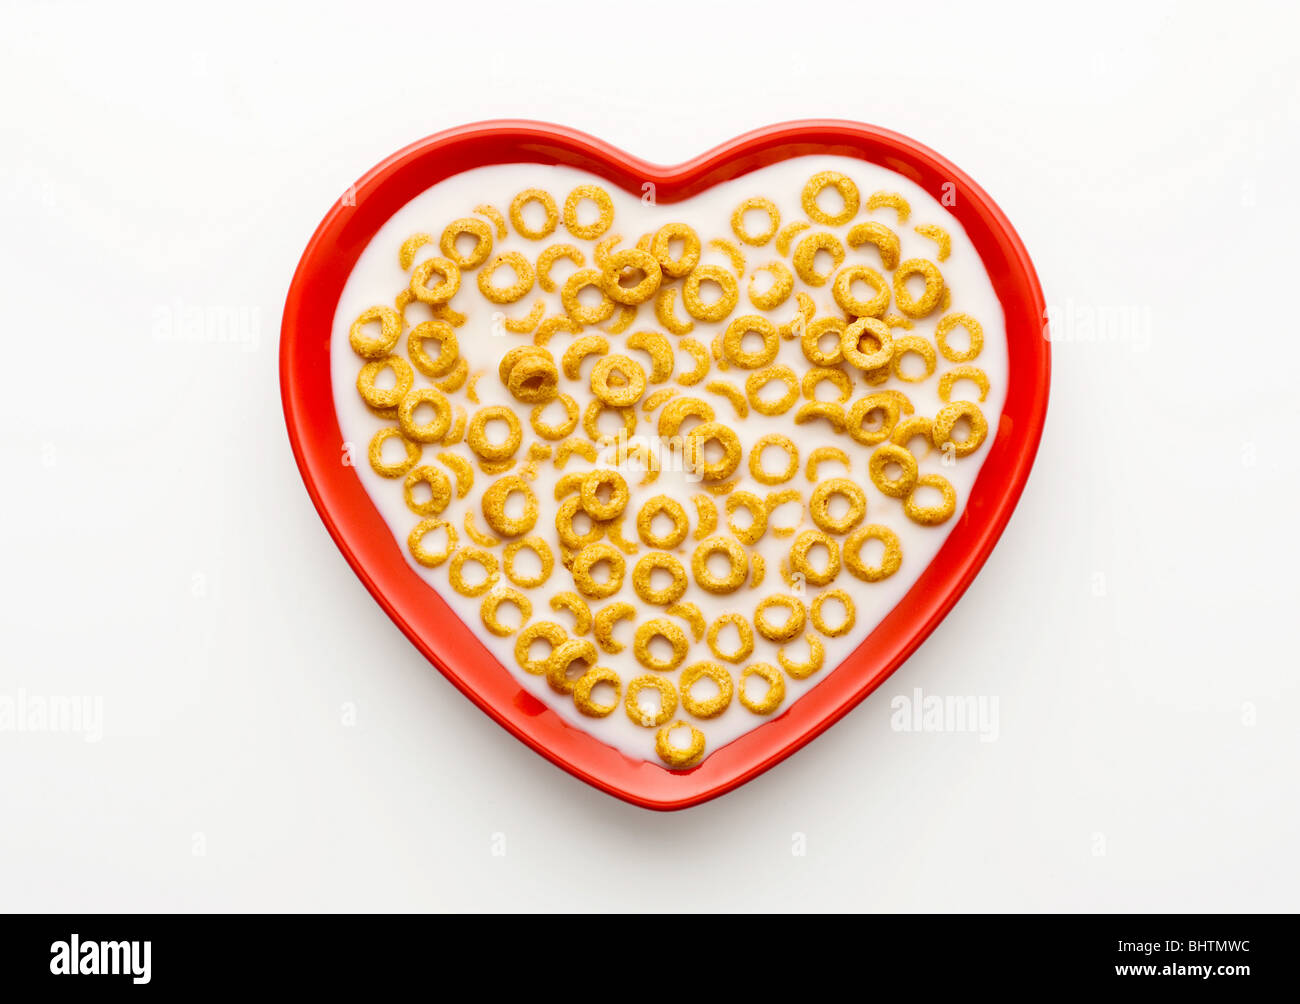 Studio shot of red heart shaped bowl of honey nut loops and milk on a white background, shot from above. - Stock Image